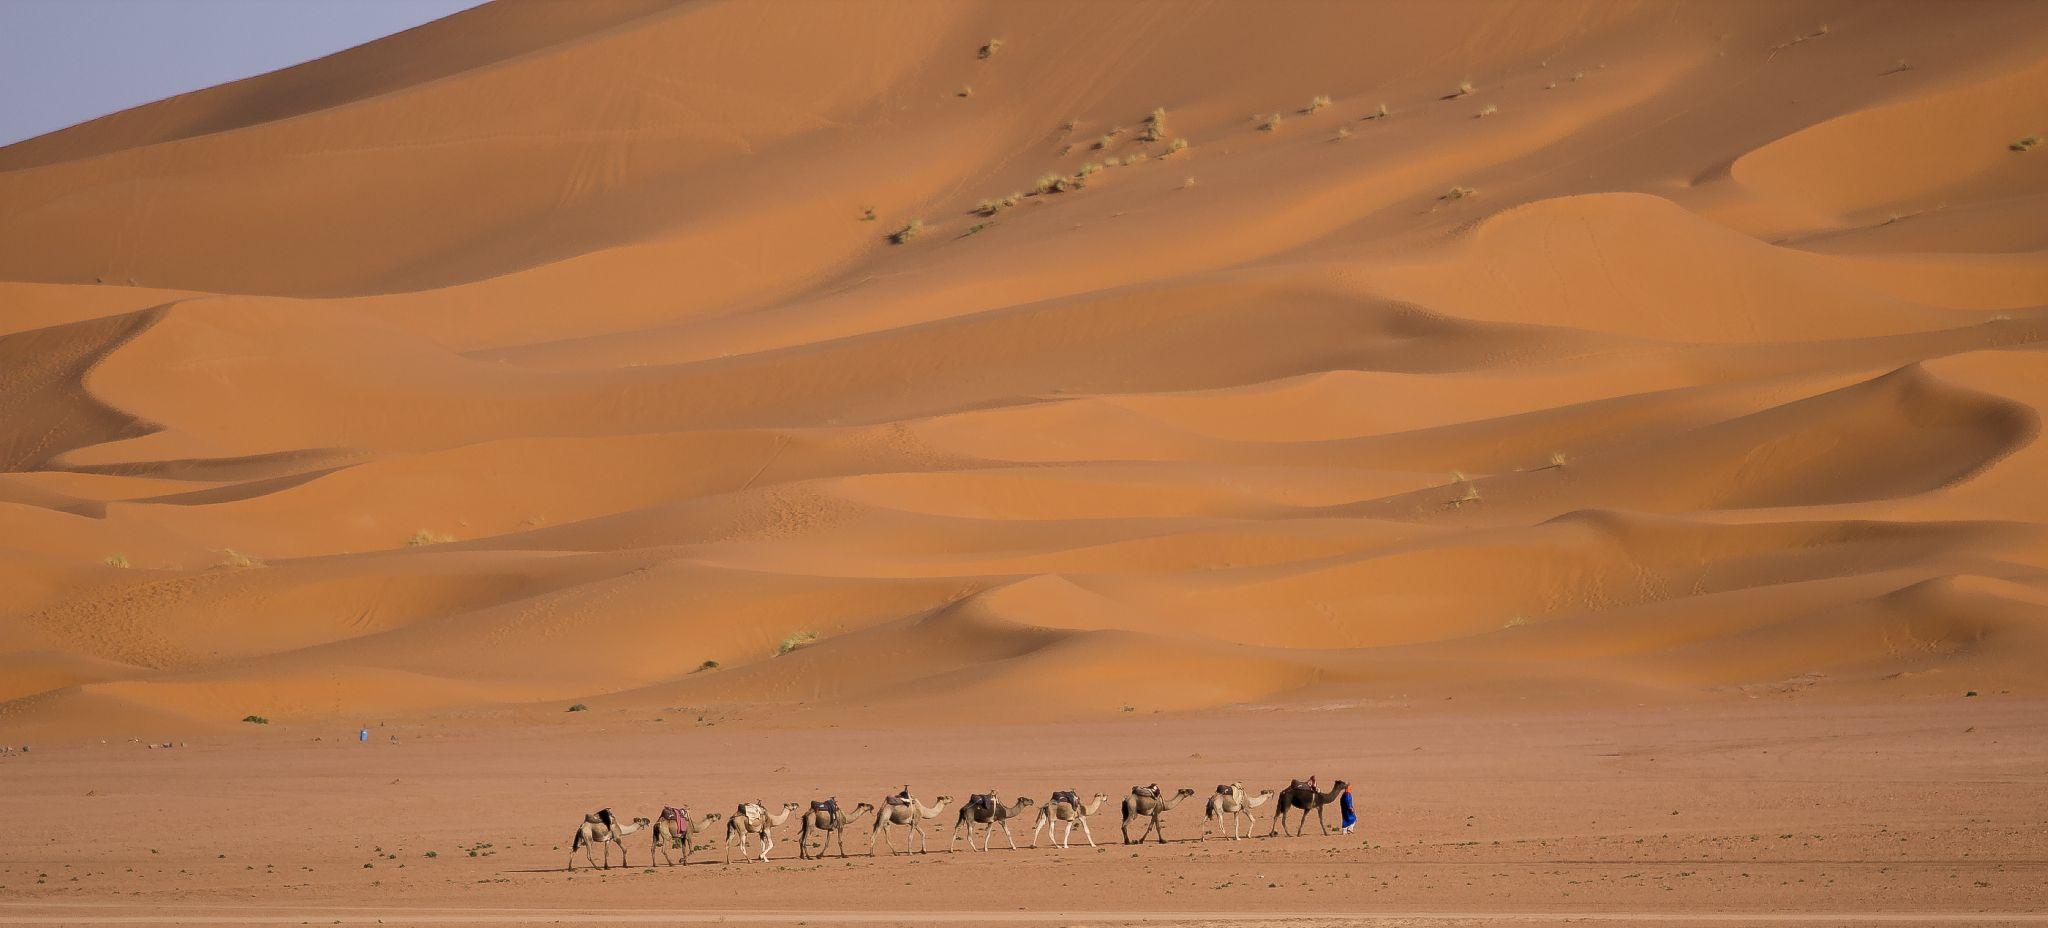 Desert of Morocco by PaoloNavone